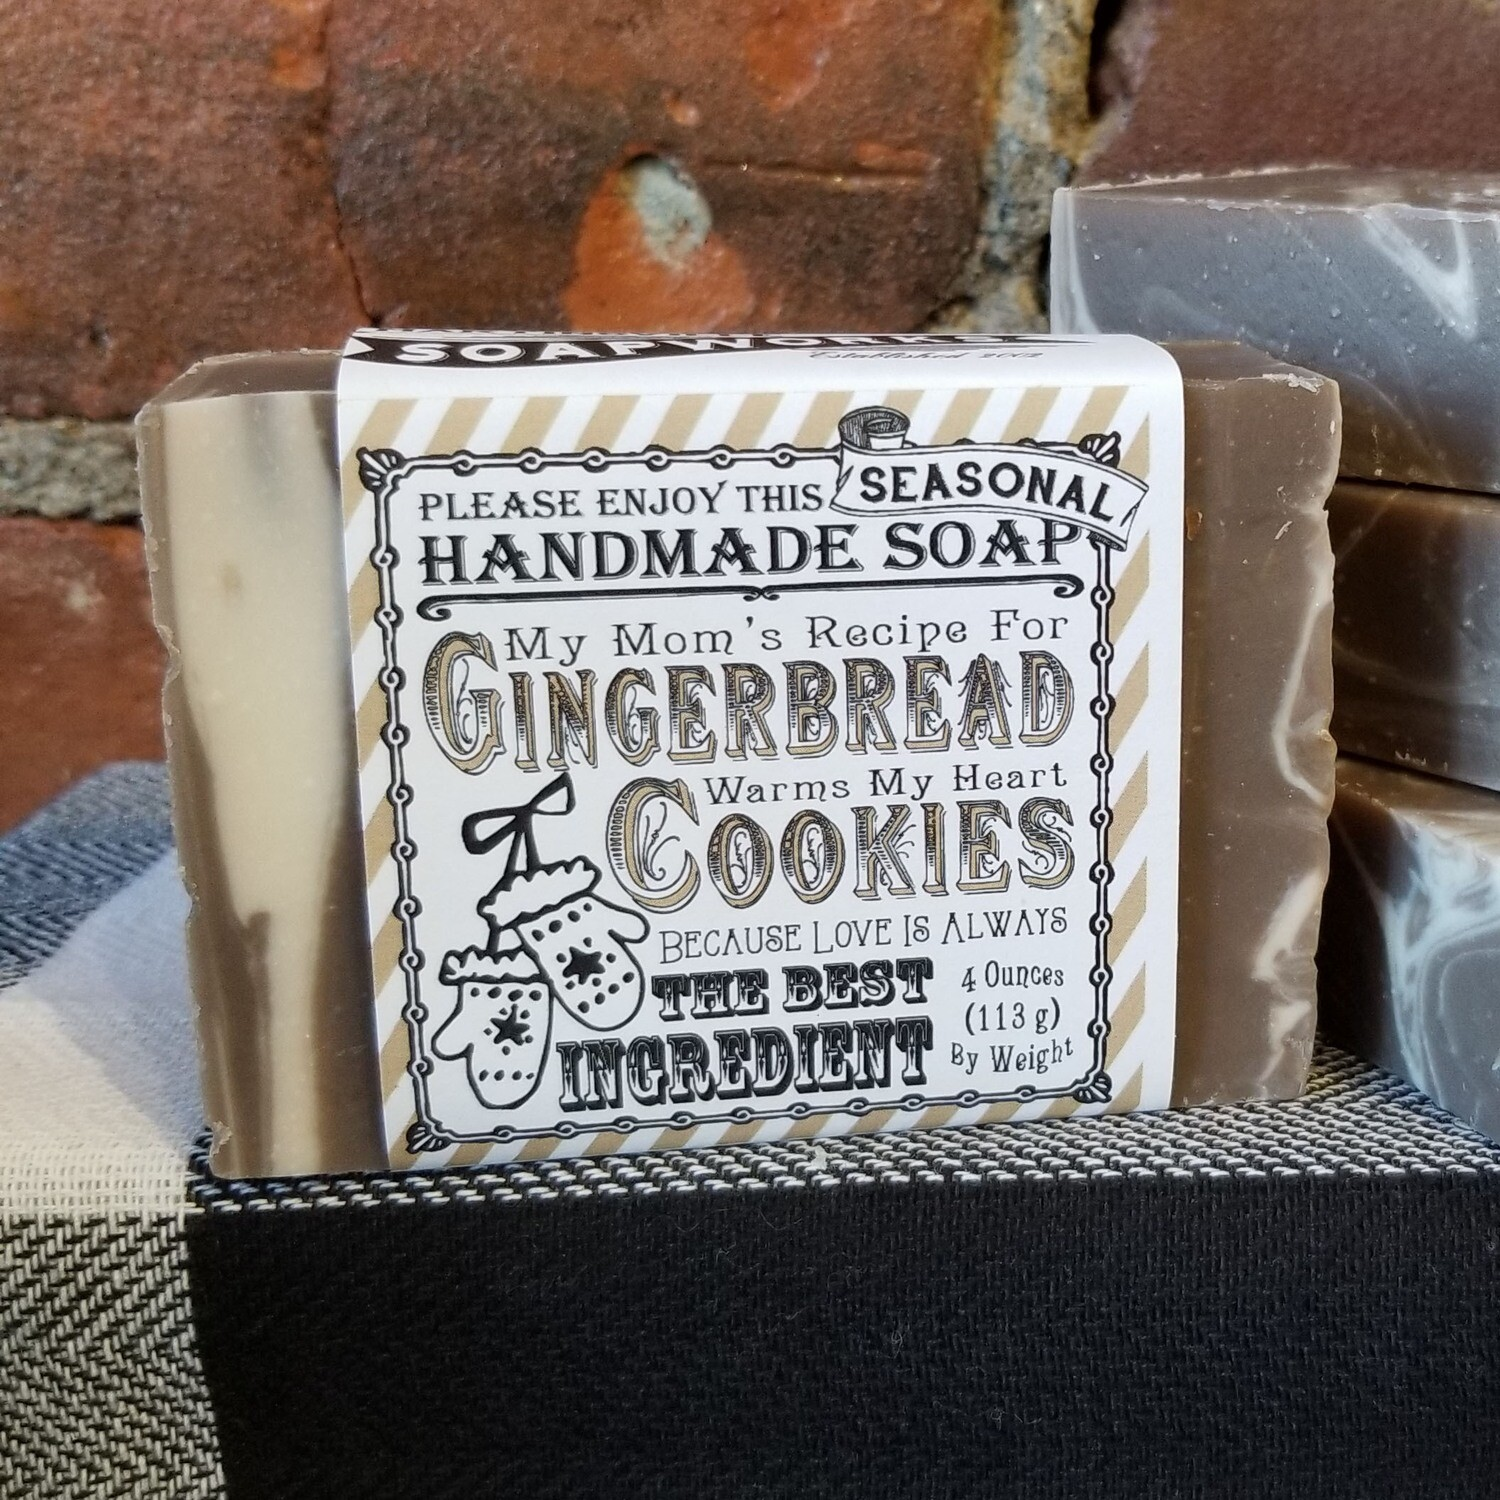 Gingerbread Cookies Handmade Soap